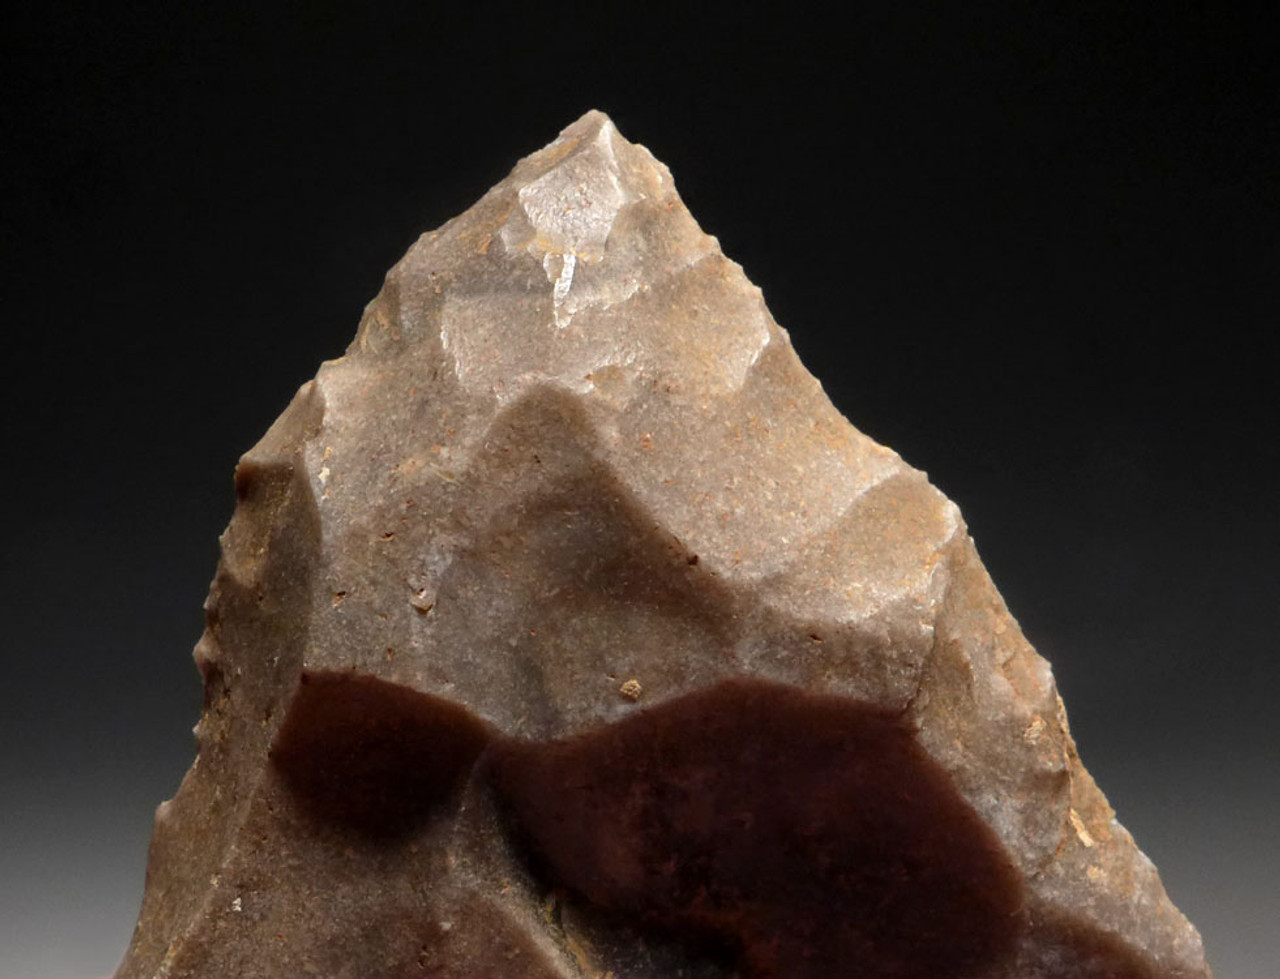 UP015 - UPPER PALEOLITHIC POINT FLAKE TOOL FROM FAMOUS CRO-MAGNON SITE IN FRANCE